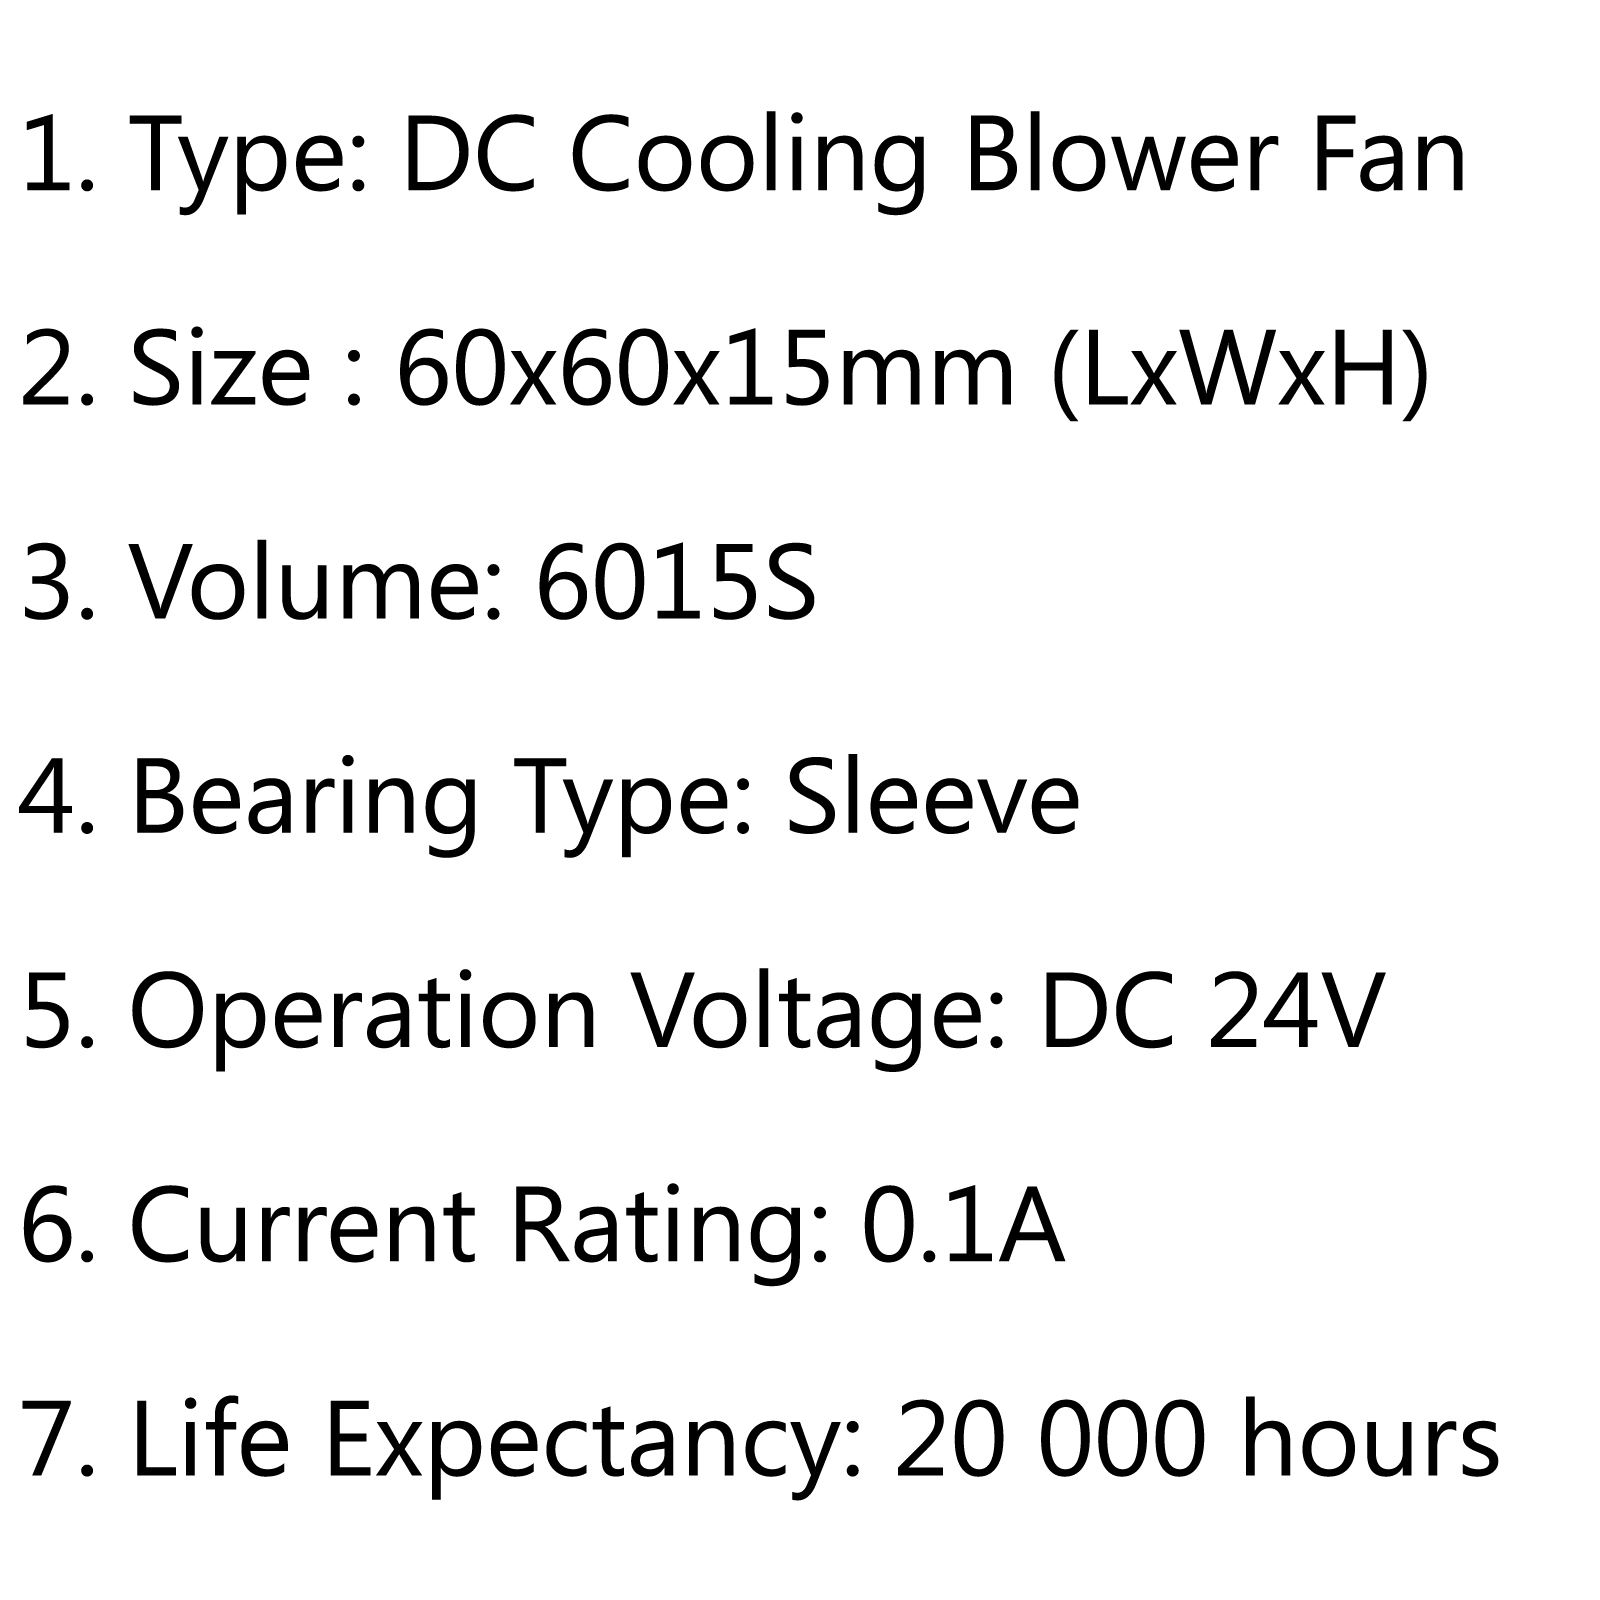 Brushless DC Cooling Blower Fan 24V 6015S 60x60x15mm 0.1A